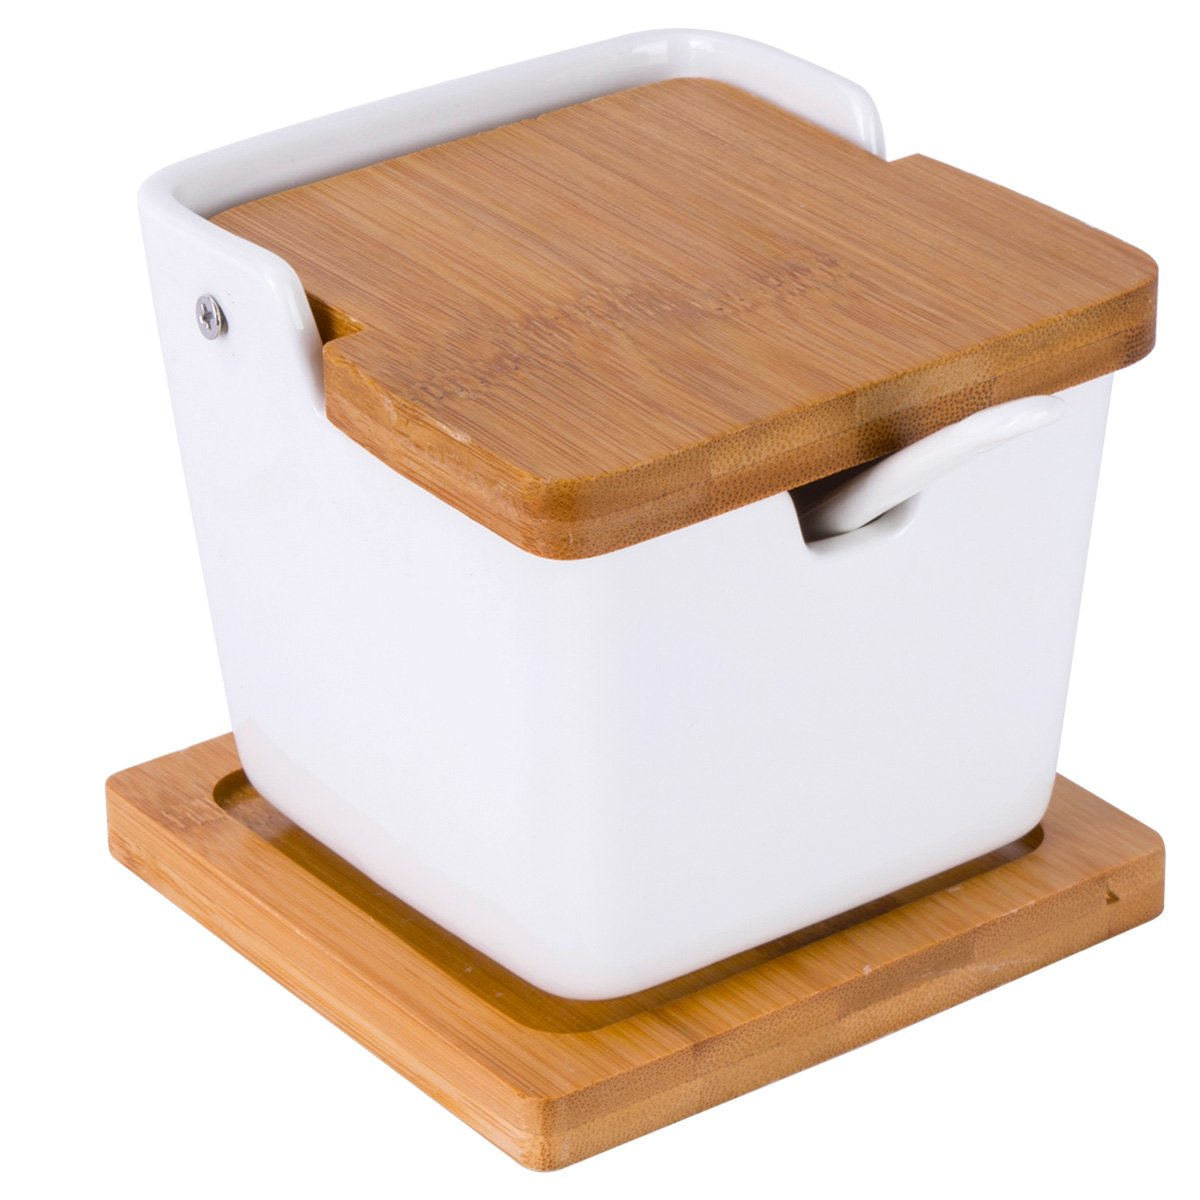 Vencer Ceramic Square Tank Sugar Bowl with Sugar Spoon and Bamboo Lid with Bamboo Base for Home and Kitchen - Modern Design,White,VFO-008